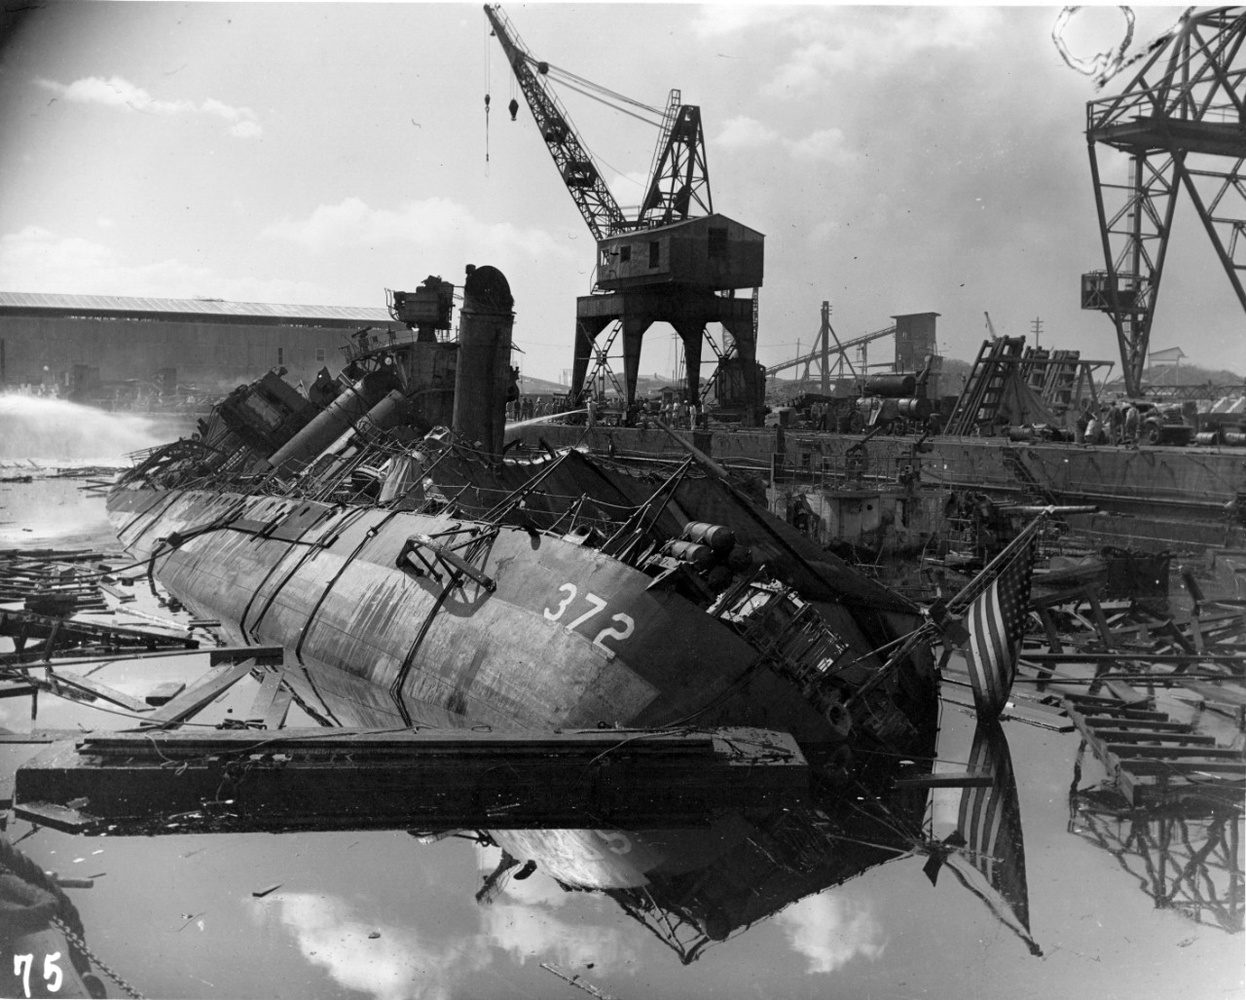 Pearl Harbor In Images A Date Which Will Live In Infamy